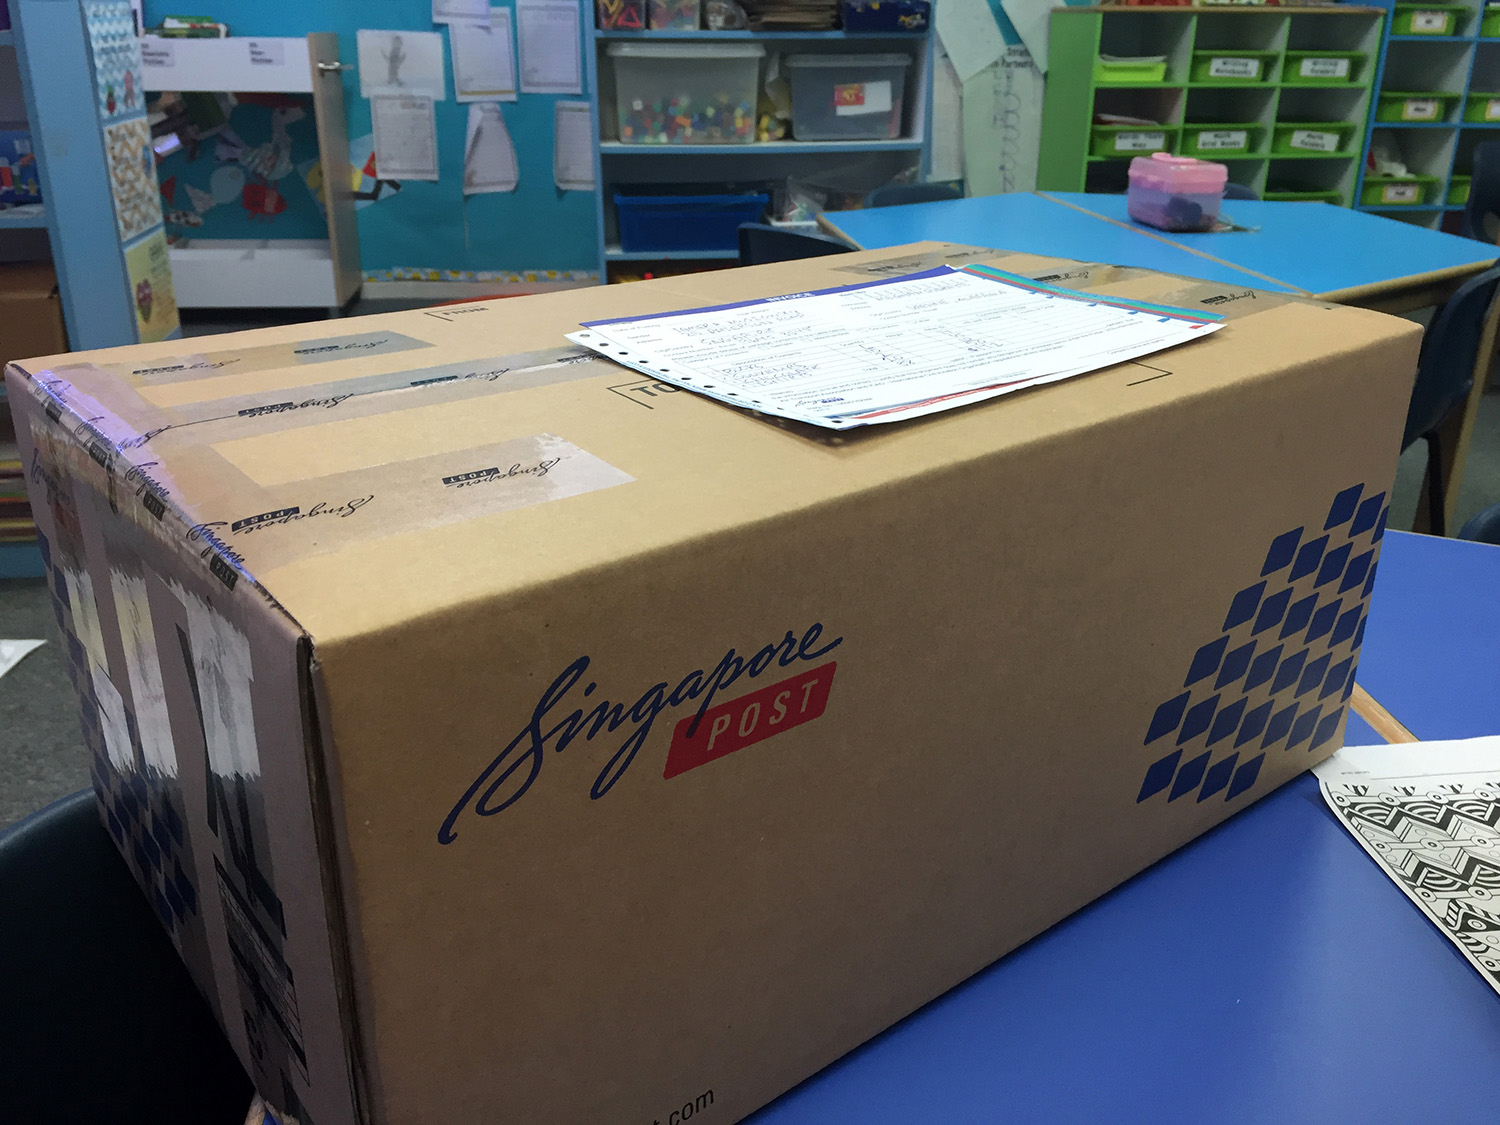 a box from Singapore